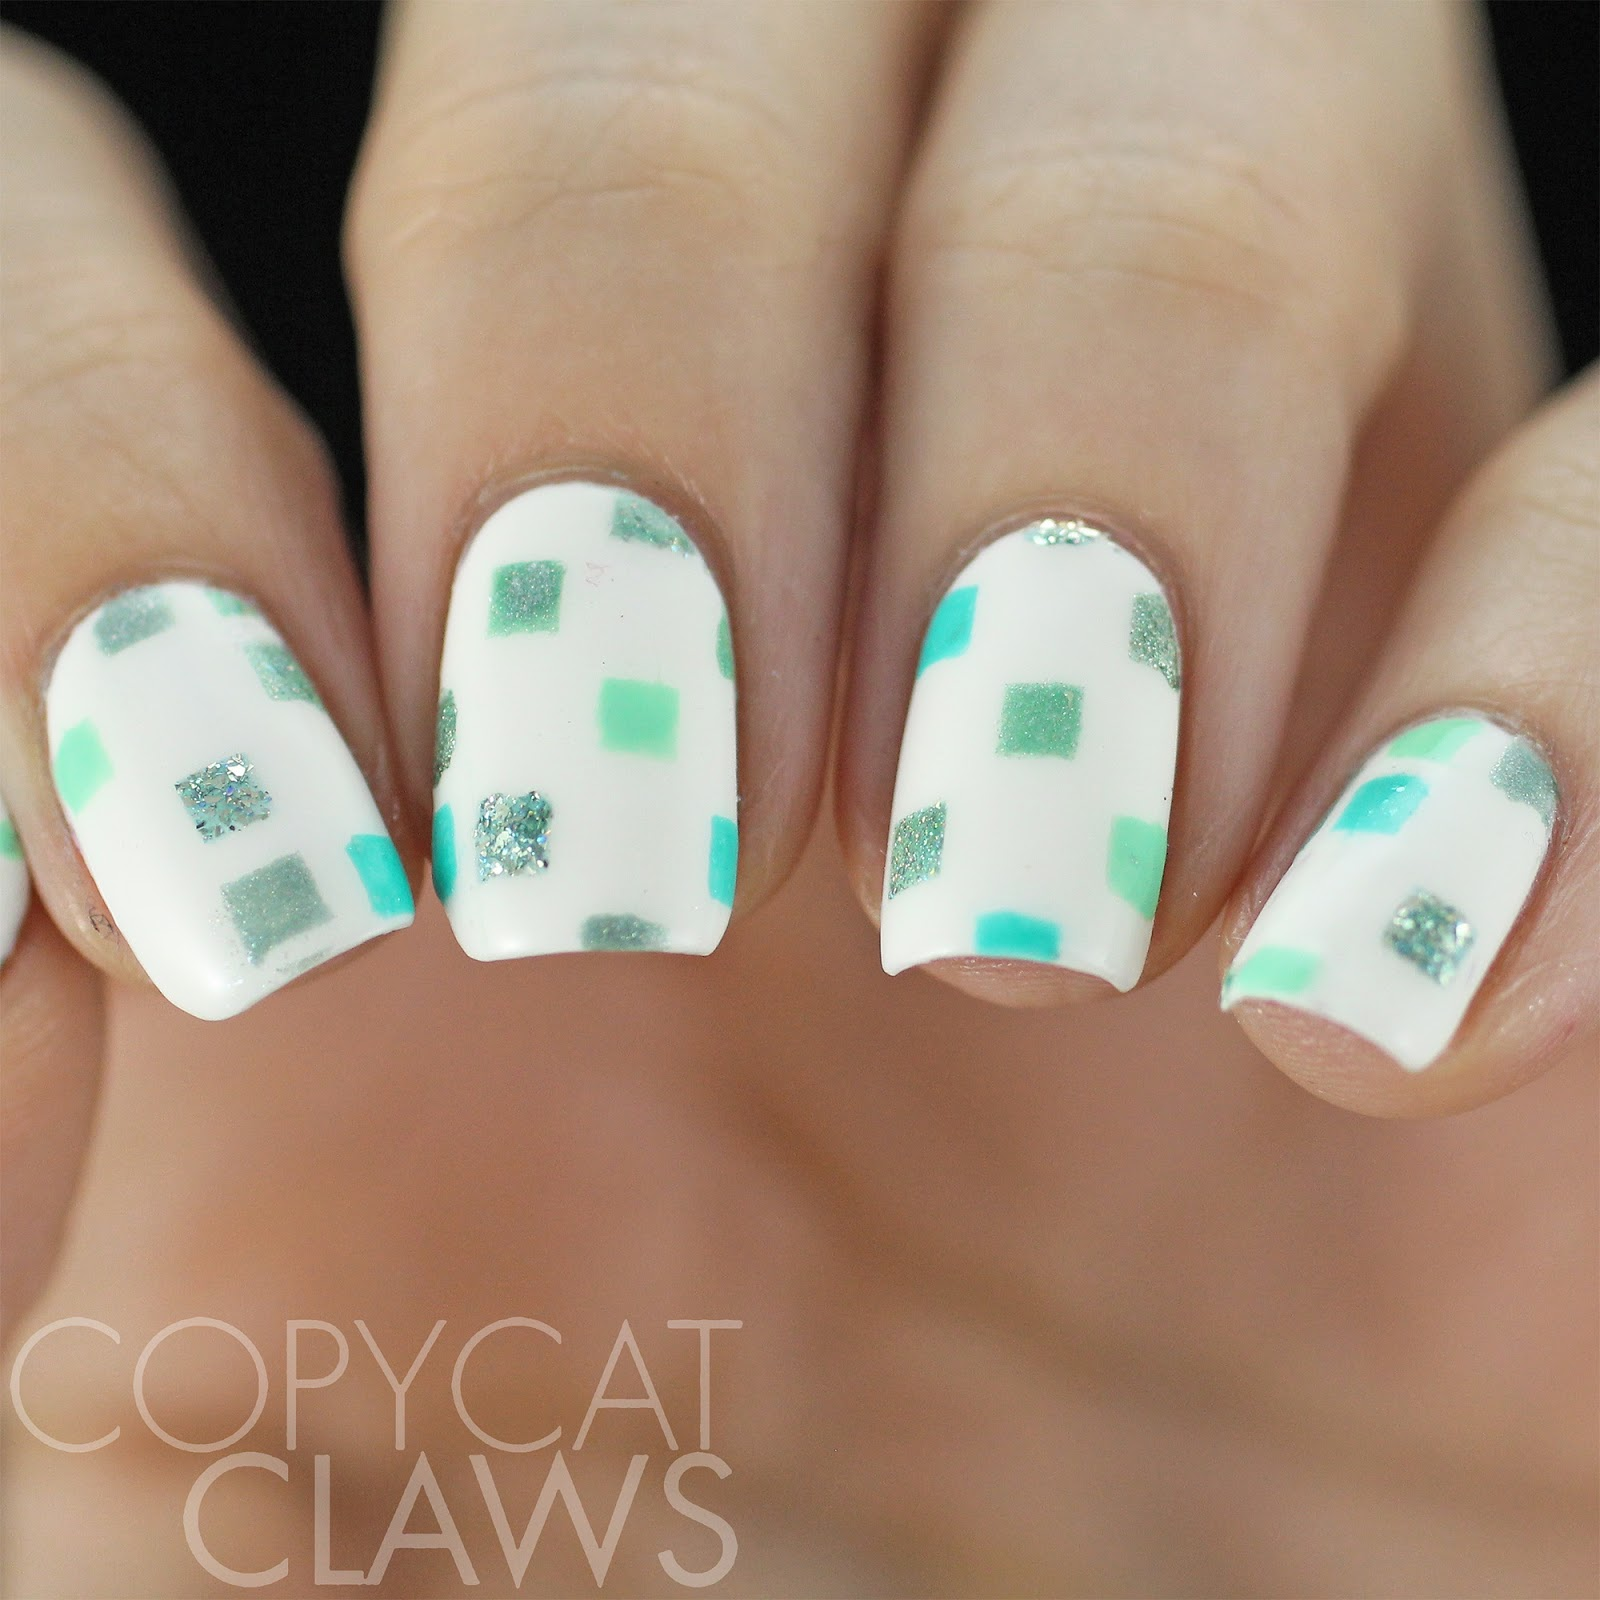 Copycat claws 40 great nail art ideas mint green for my white base i used kbshimmer eyes white open once that was dry i applied the vinyls and filled in a few of the squares with a dotting tool prinsesfo Gallery